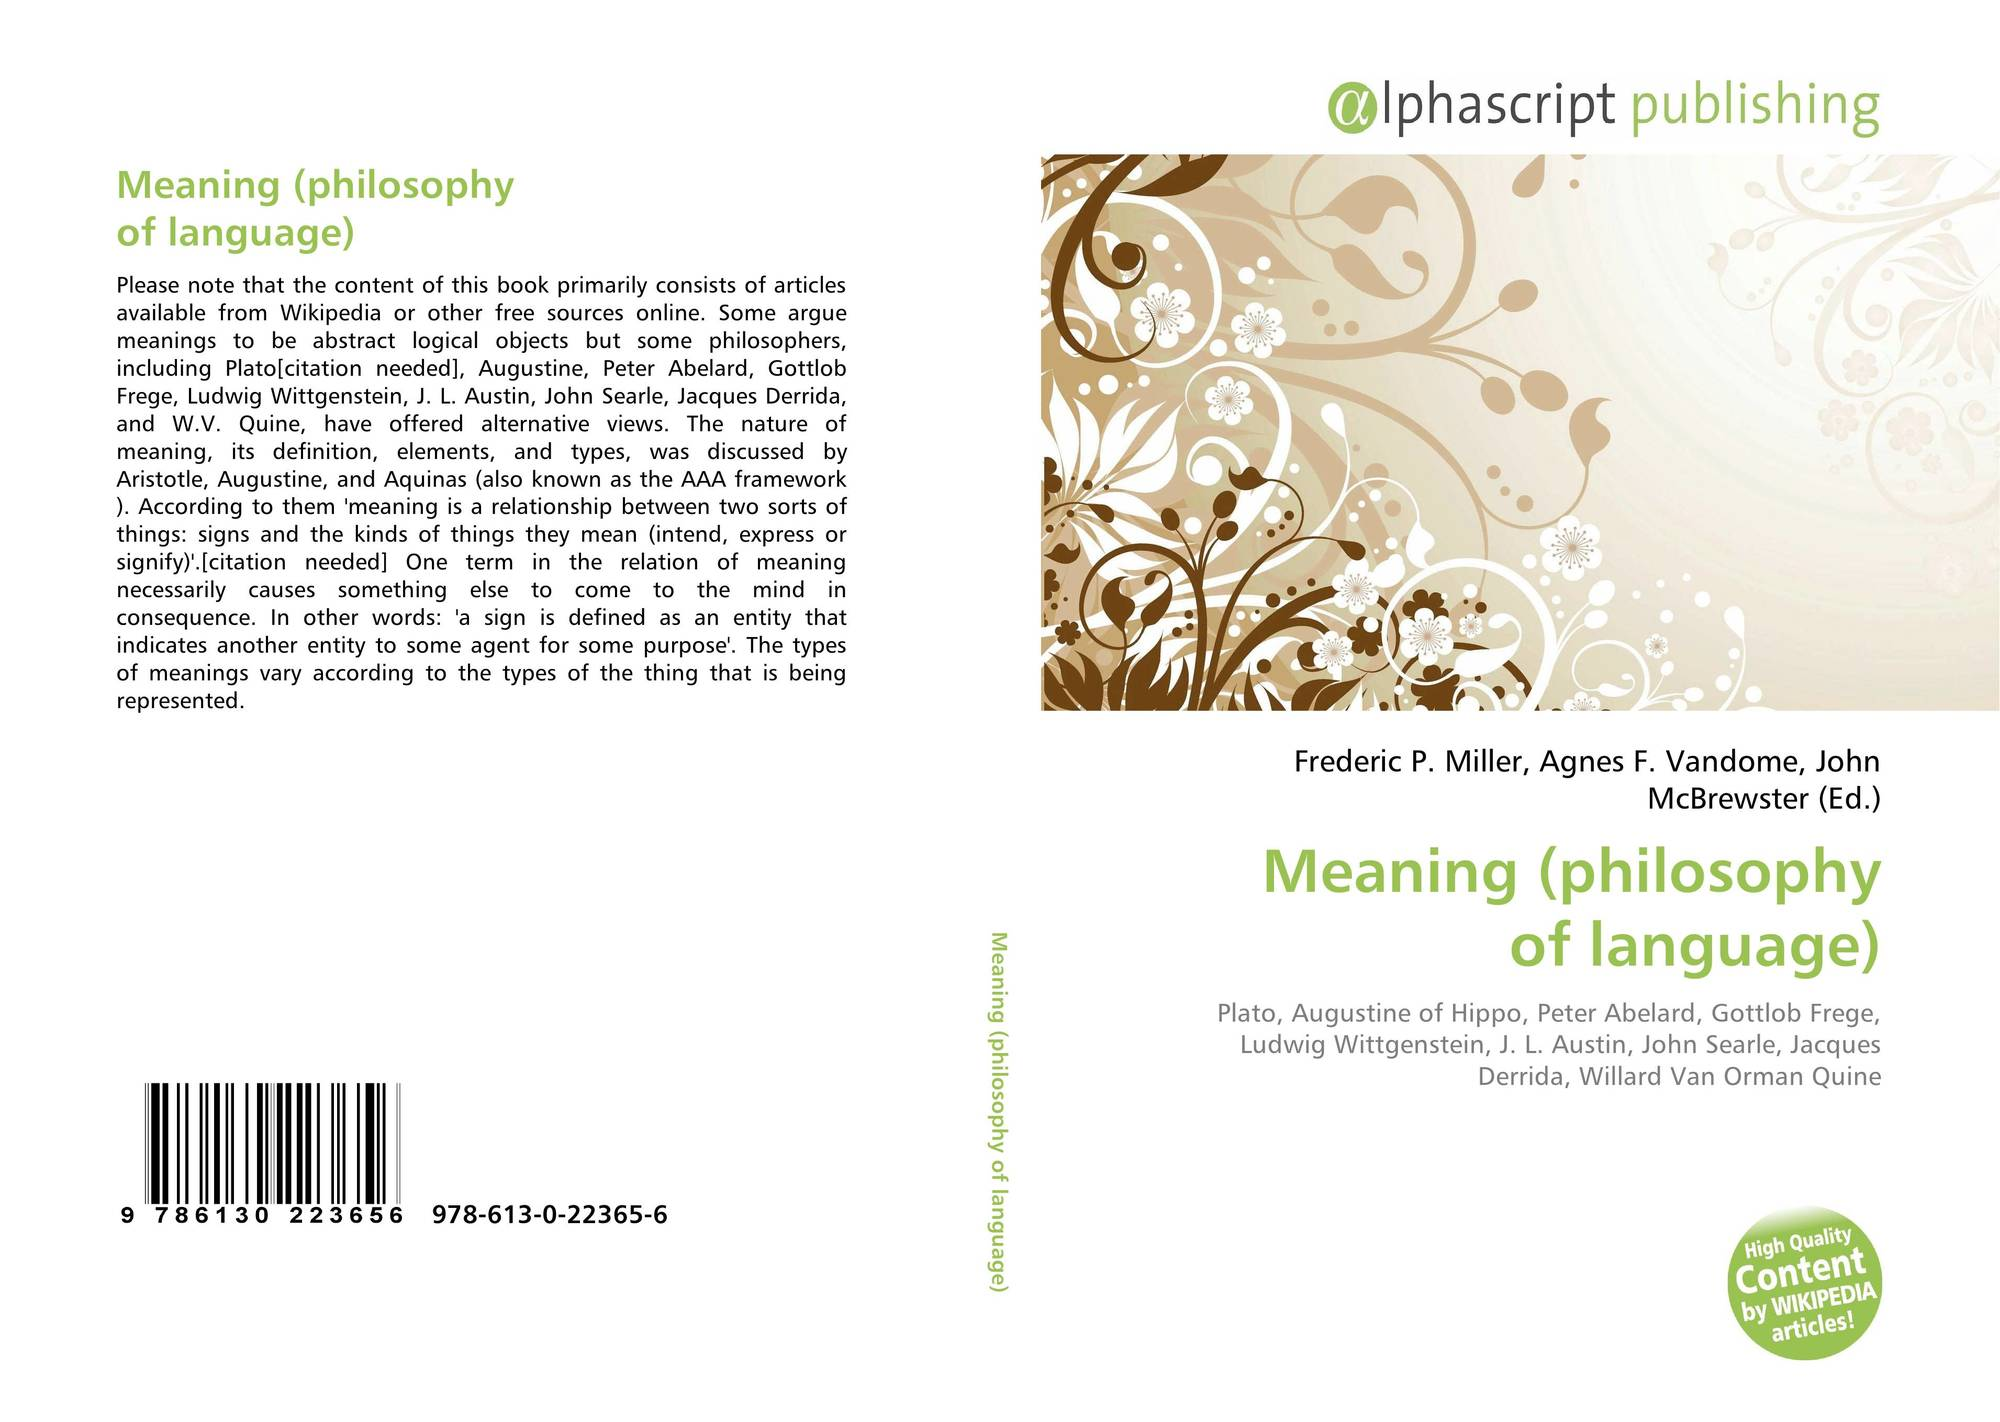 Meaning (philosophy of language), 978-613-0-22365-6